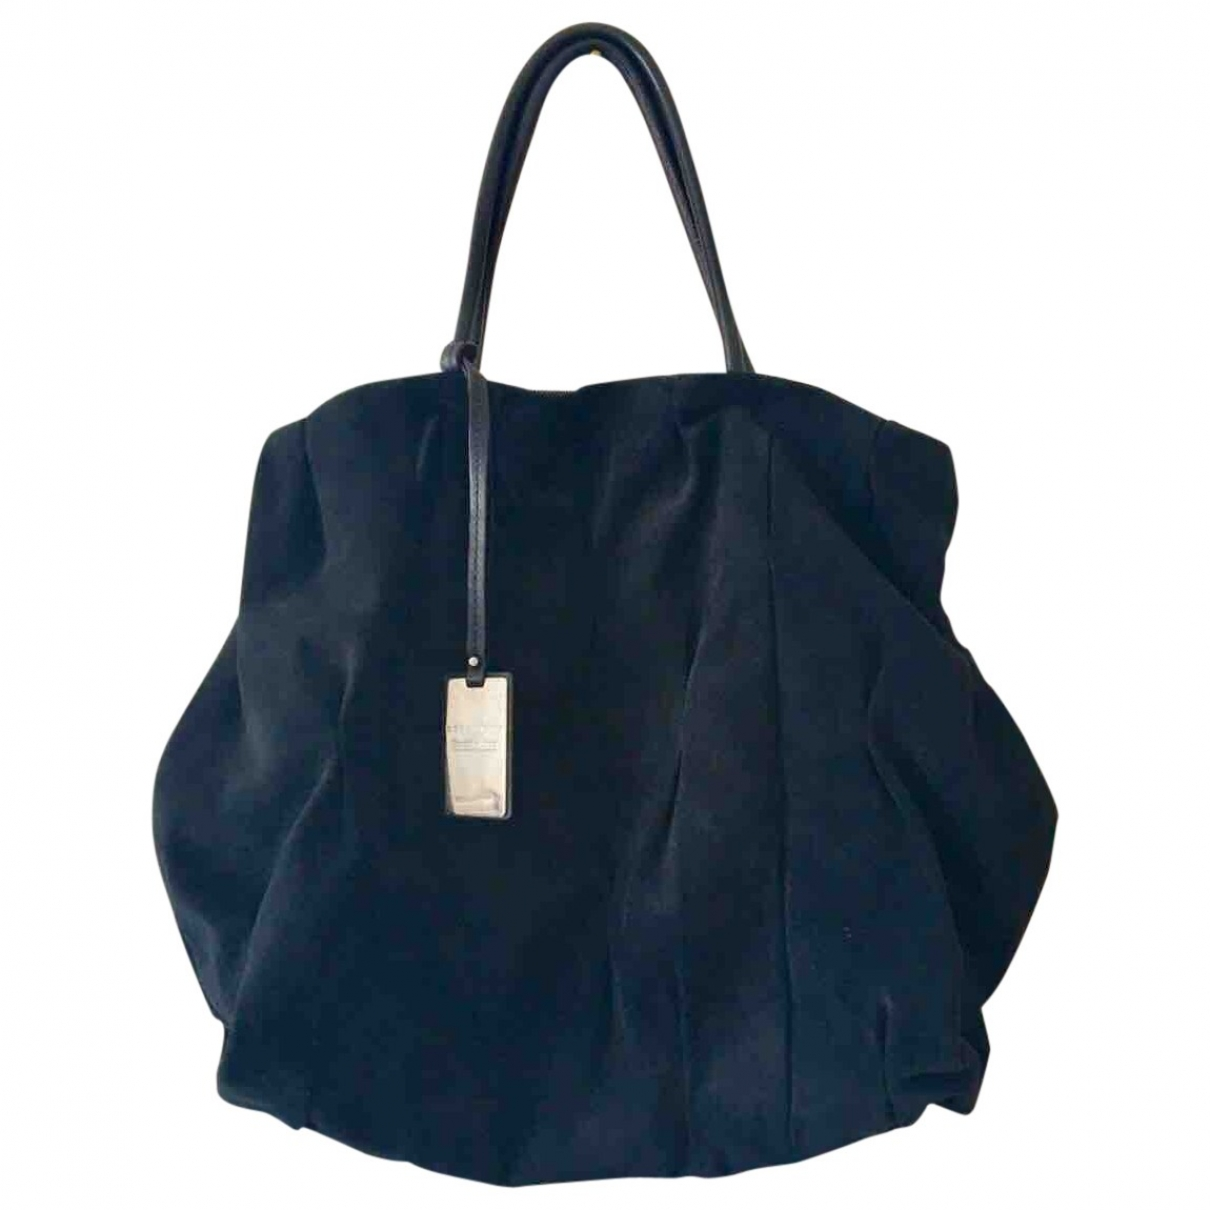 Coccinelle \N Navy Suede handbag for Women \N